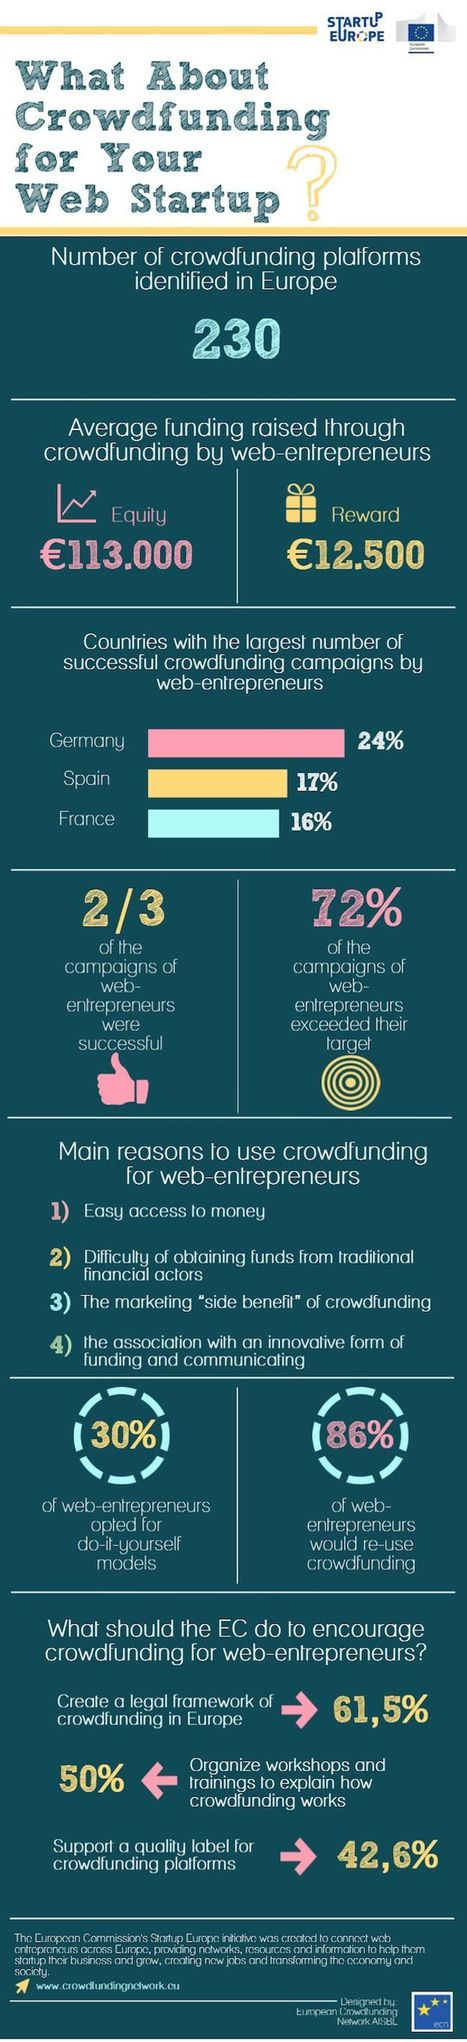 L'Europe compte 230 plate-formes de crowdfunding | Financement participatif | Scoop.it